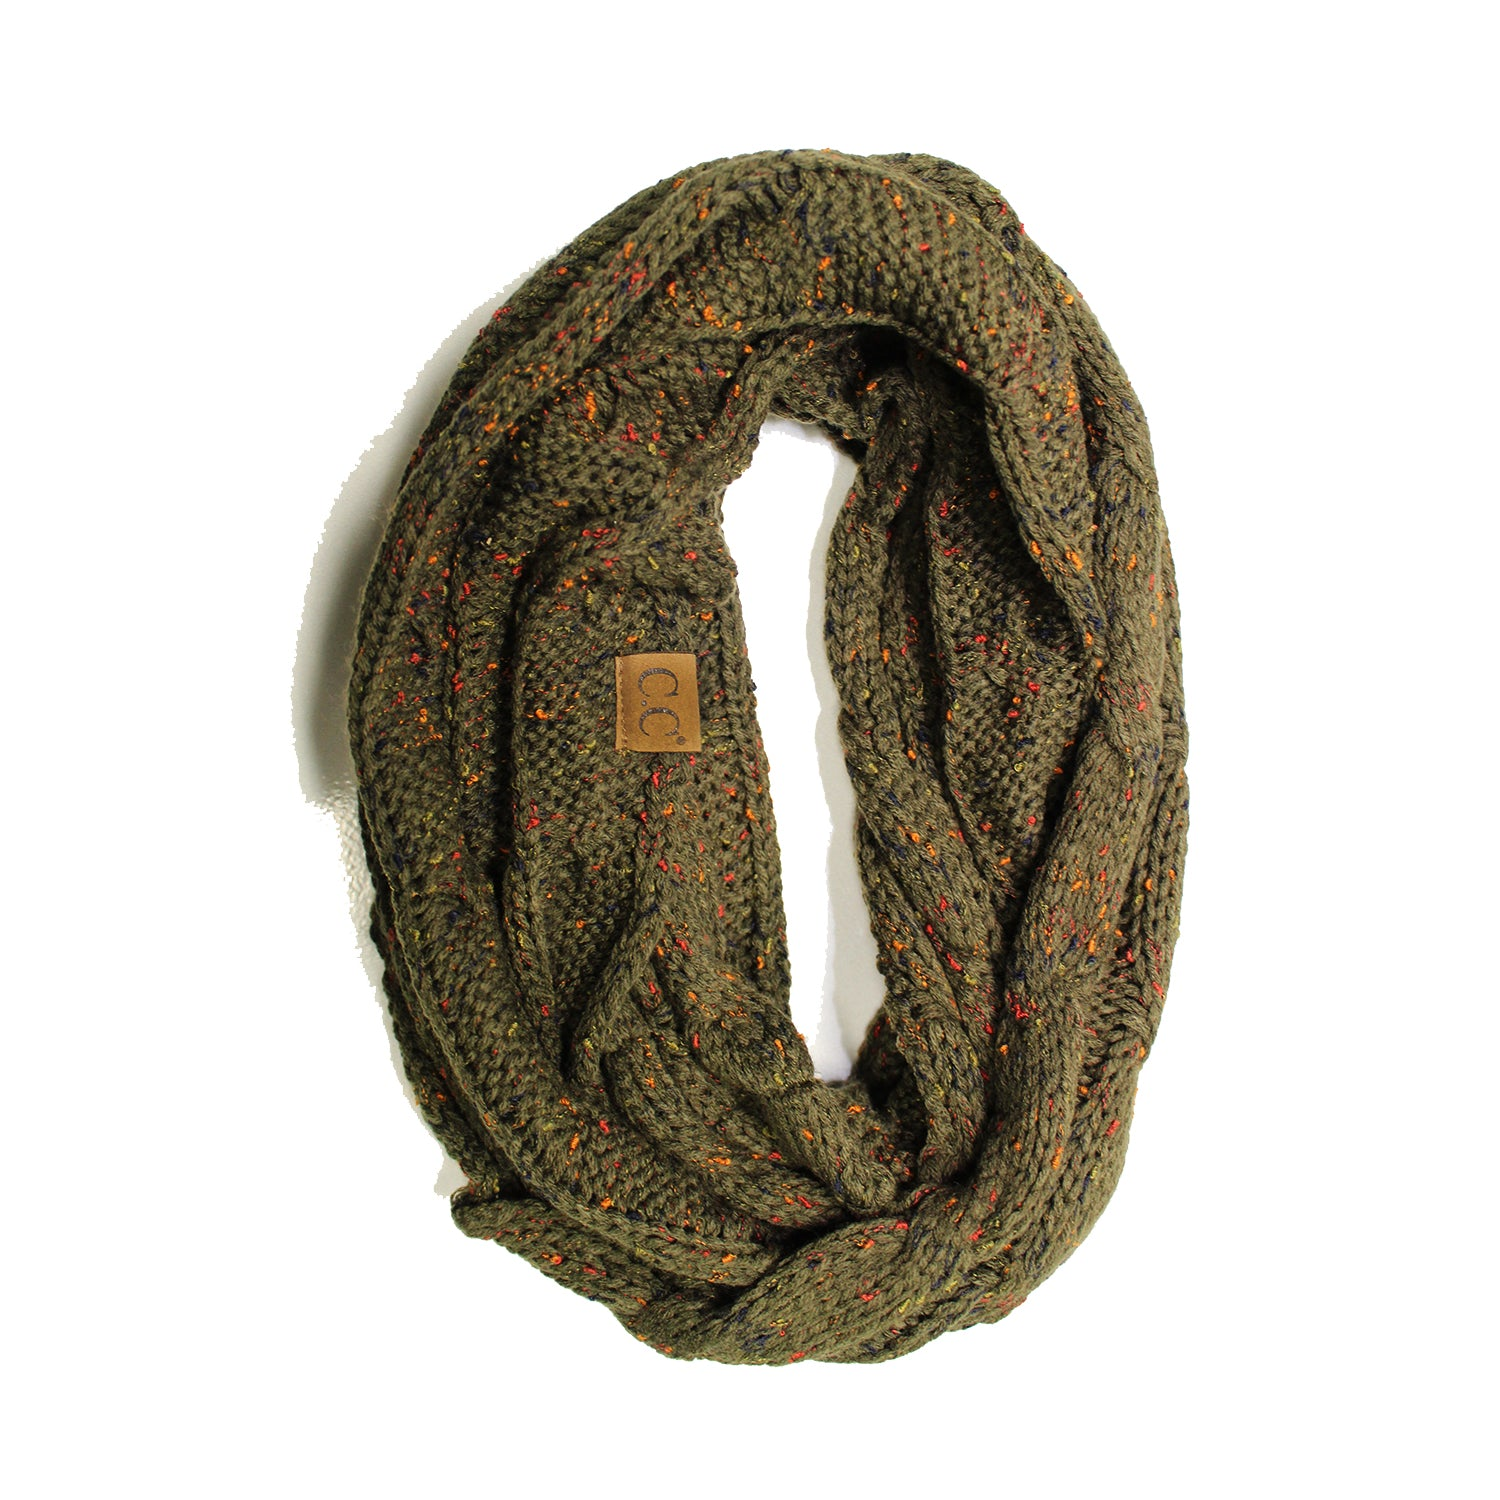 SF33-New Olive Speckled Infinity Scarf